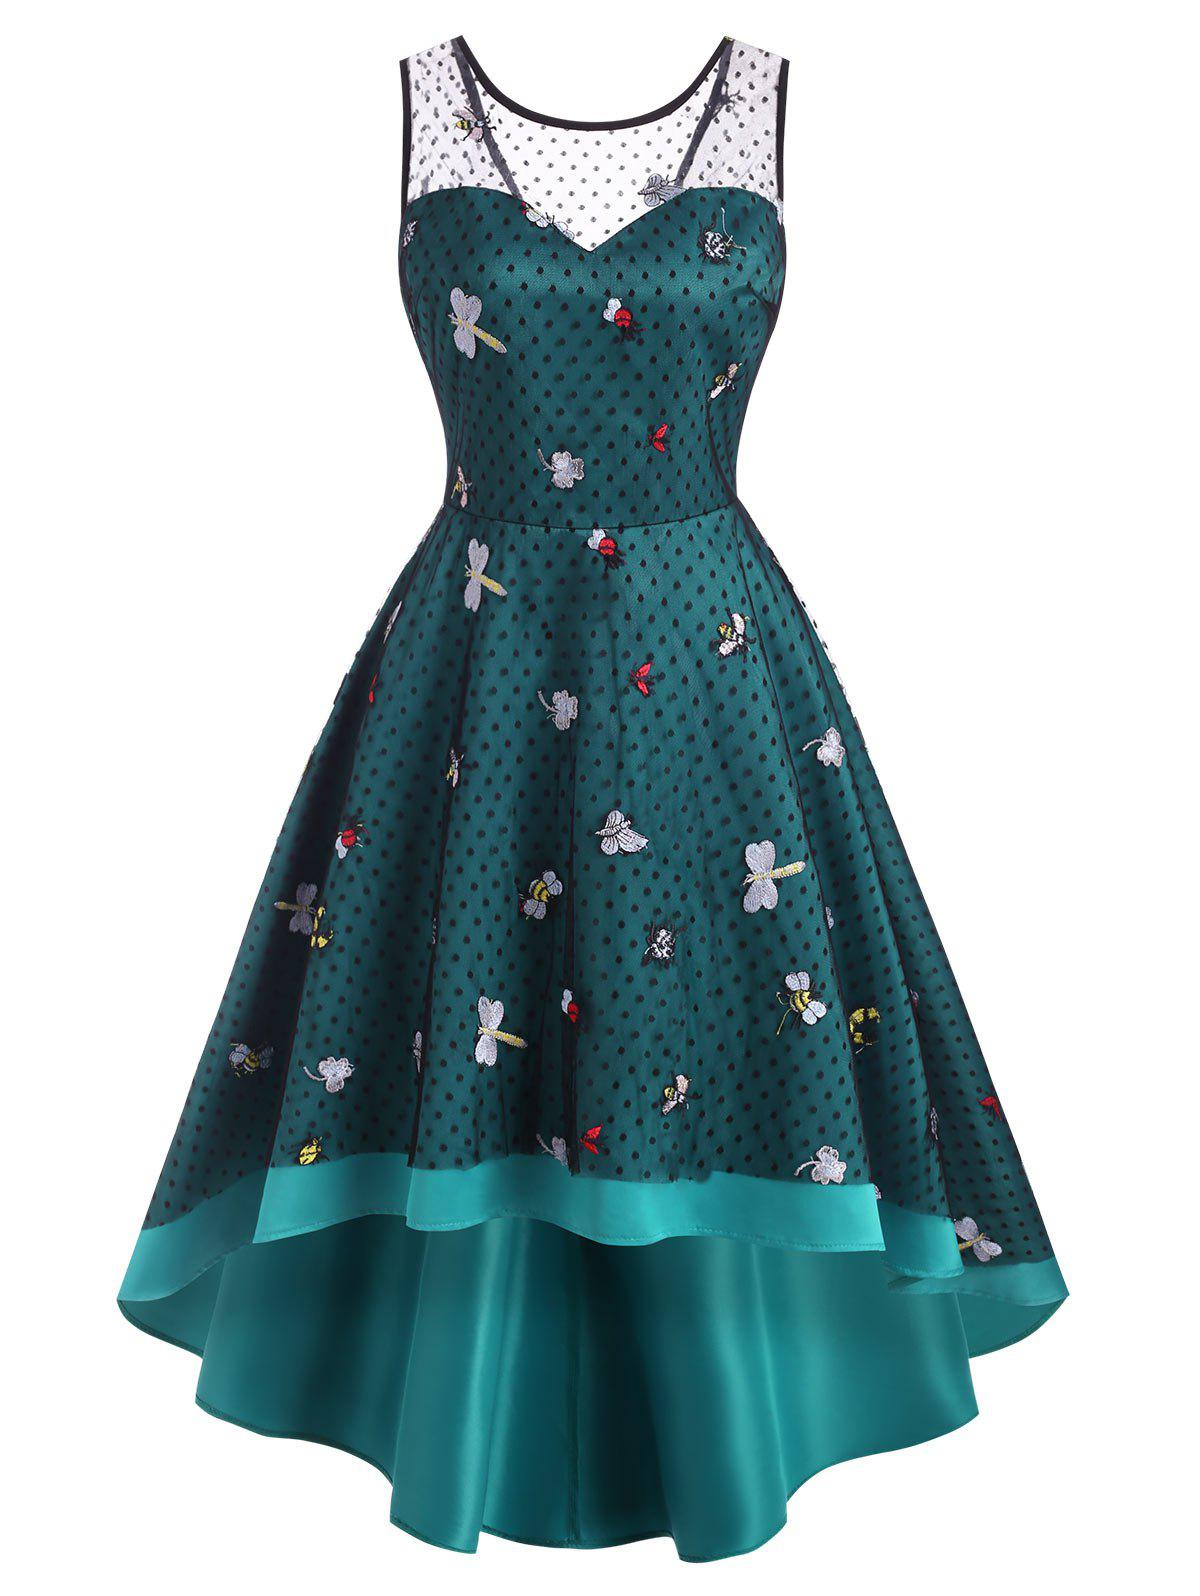 New Mesh Insect Embroidered Dip Hem Party Dress